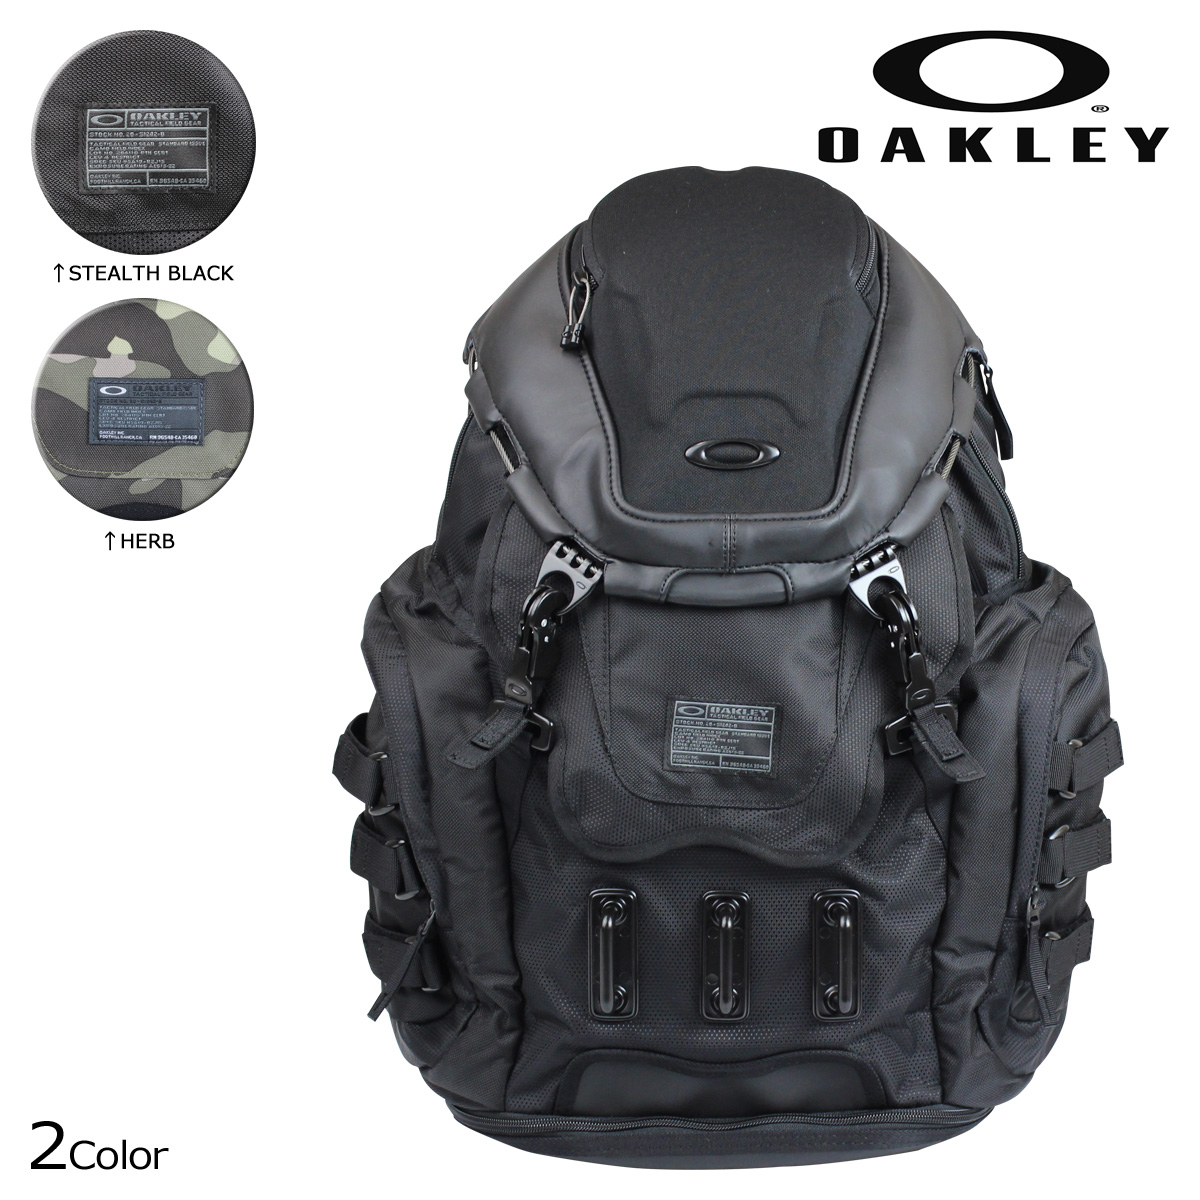 ALLSPORTS | Rakuten Global Market: Oakley Oakley mens Backpack ...